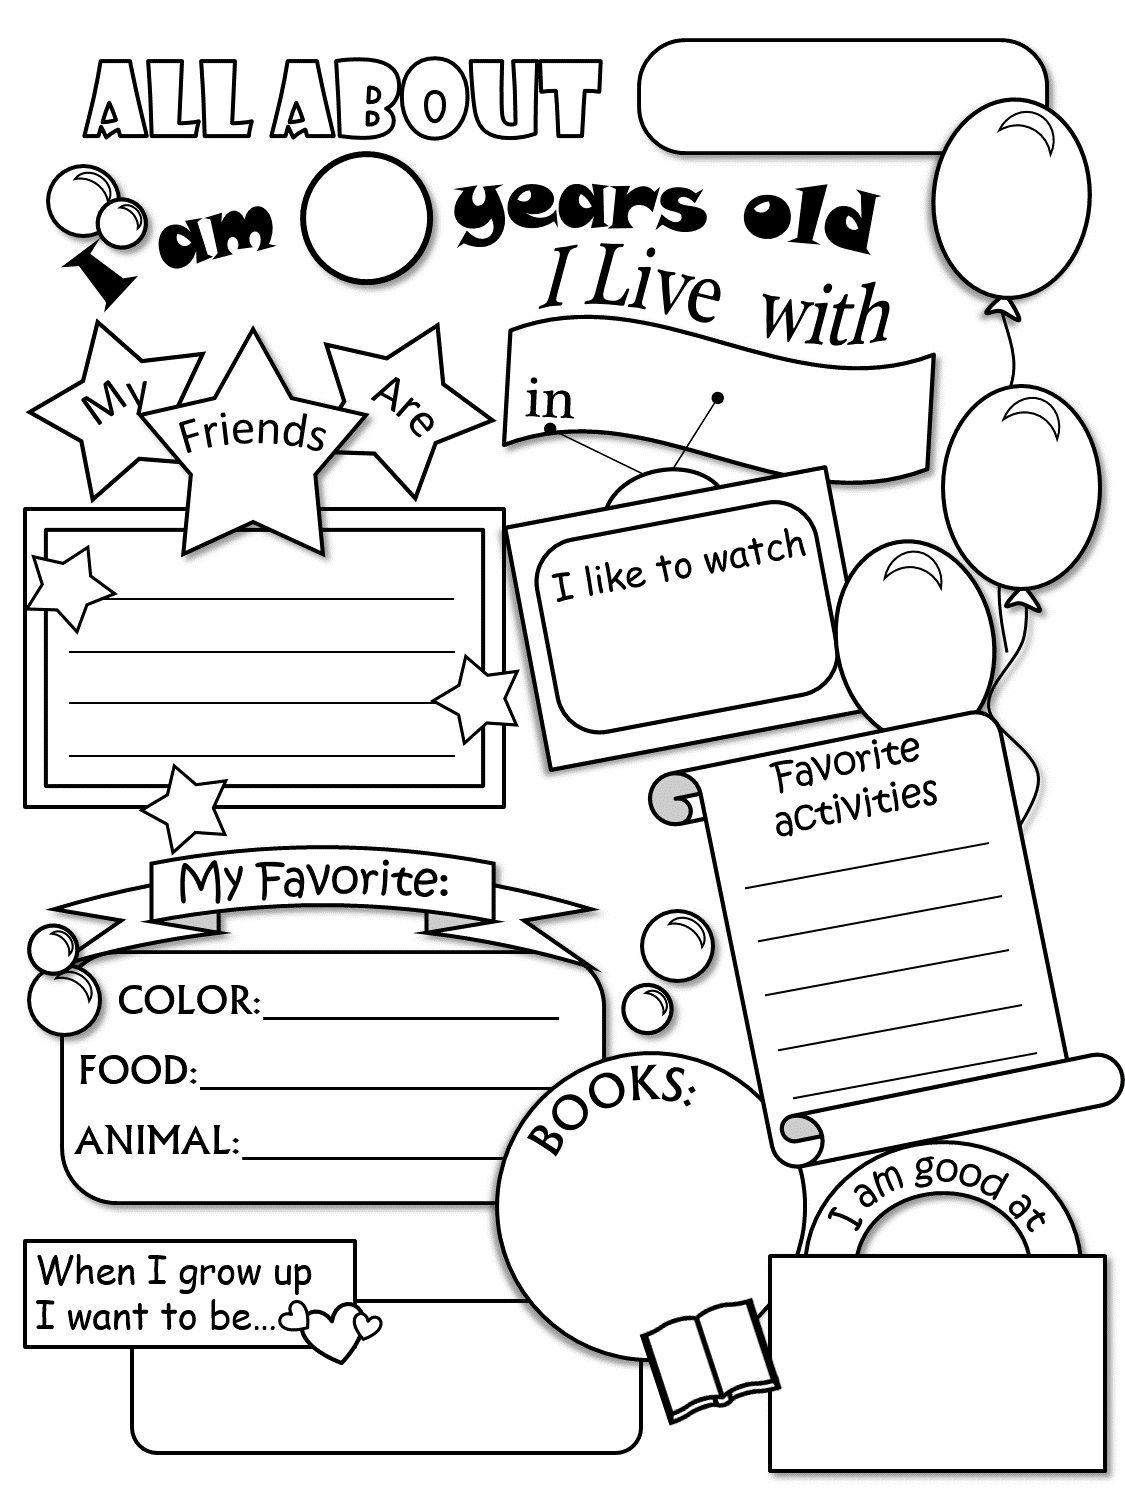 Worksheets About Me Worksheets all about me worksheet activities pinterest worksheets school worksheet